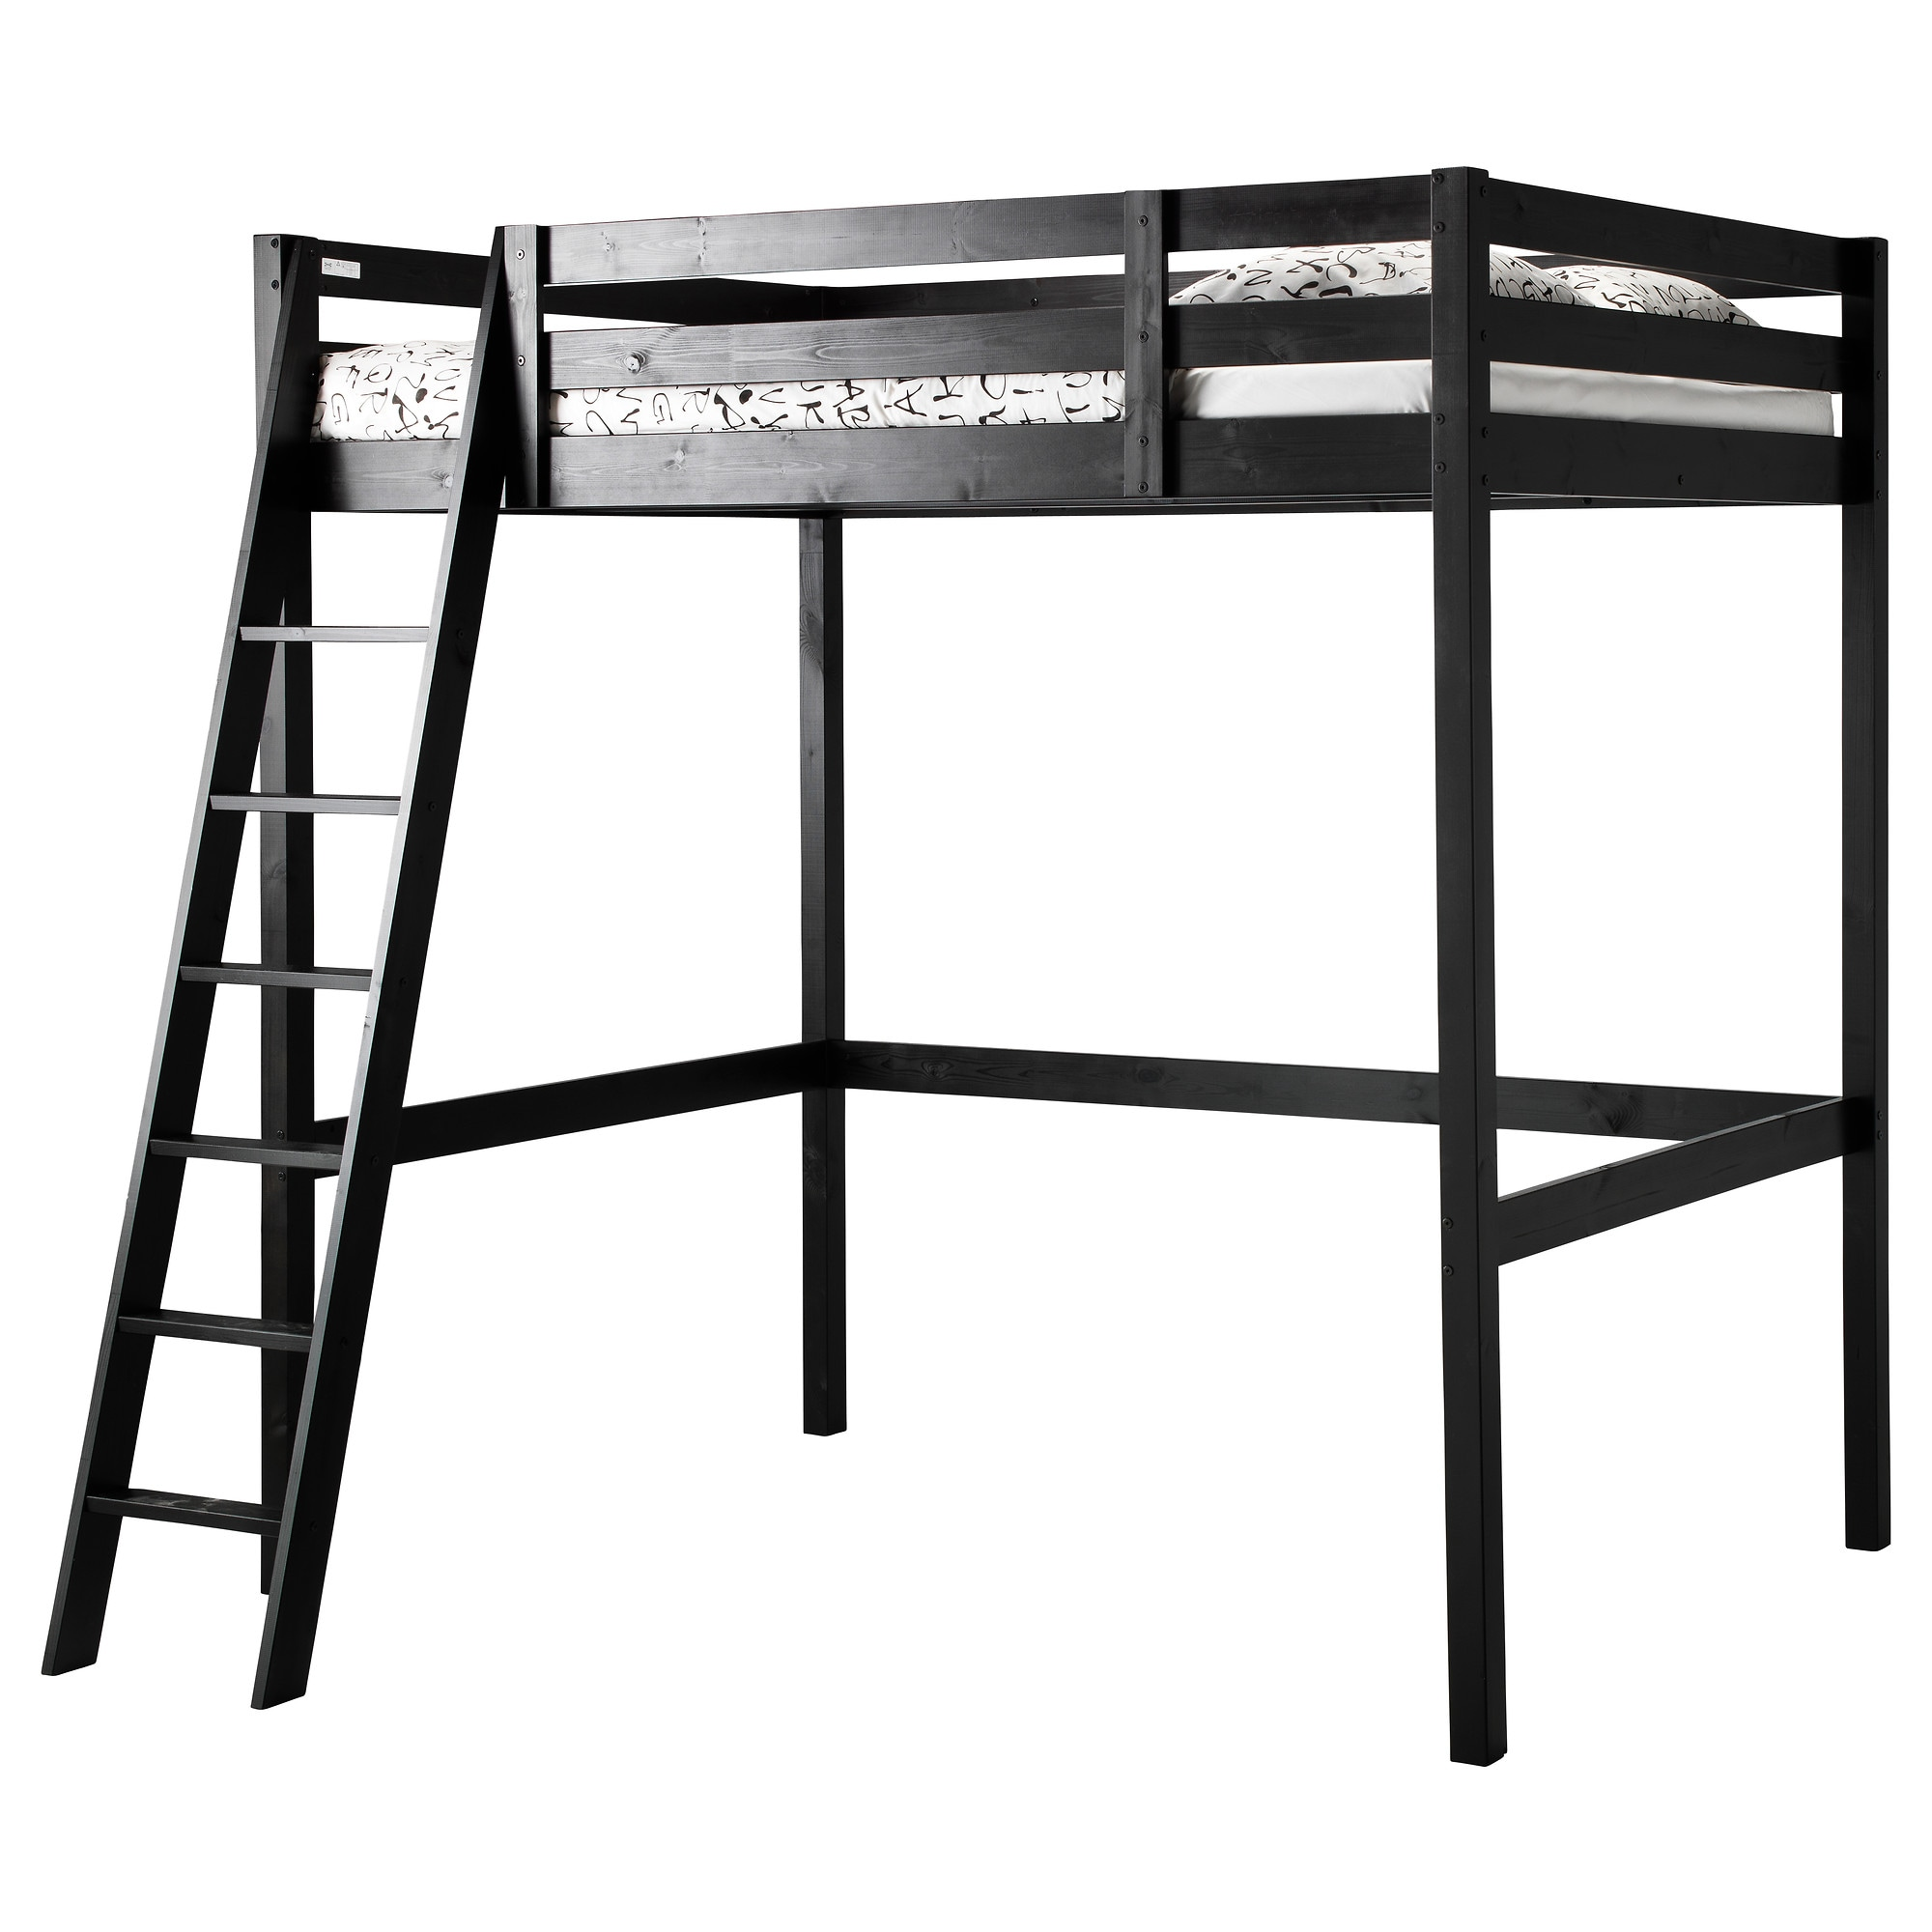 Ikea loft bed weight limit stora my marketing journey for Ikea stora loft bed weight limit